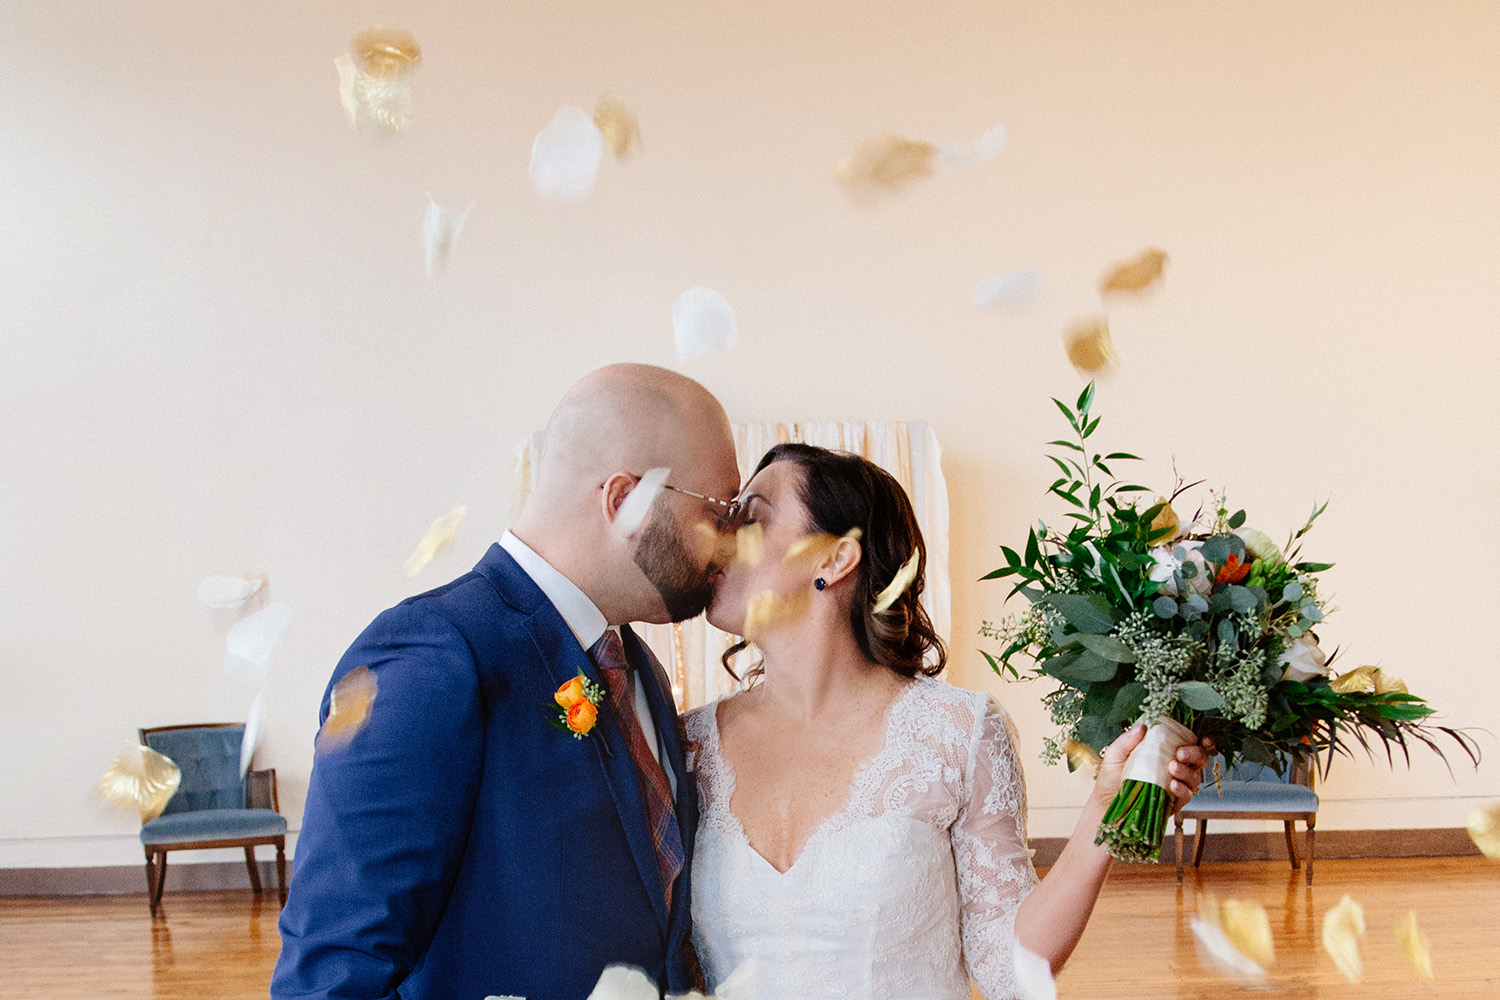 CLASSIC ELOPEMENT - JUST THE TWO OF US